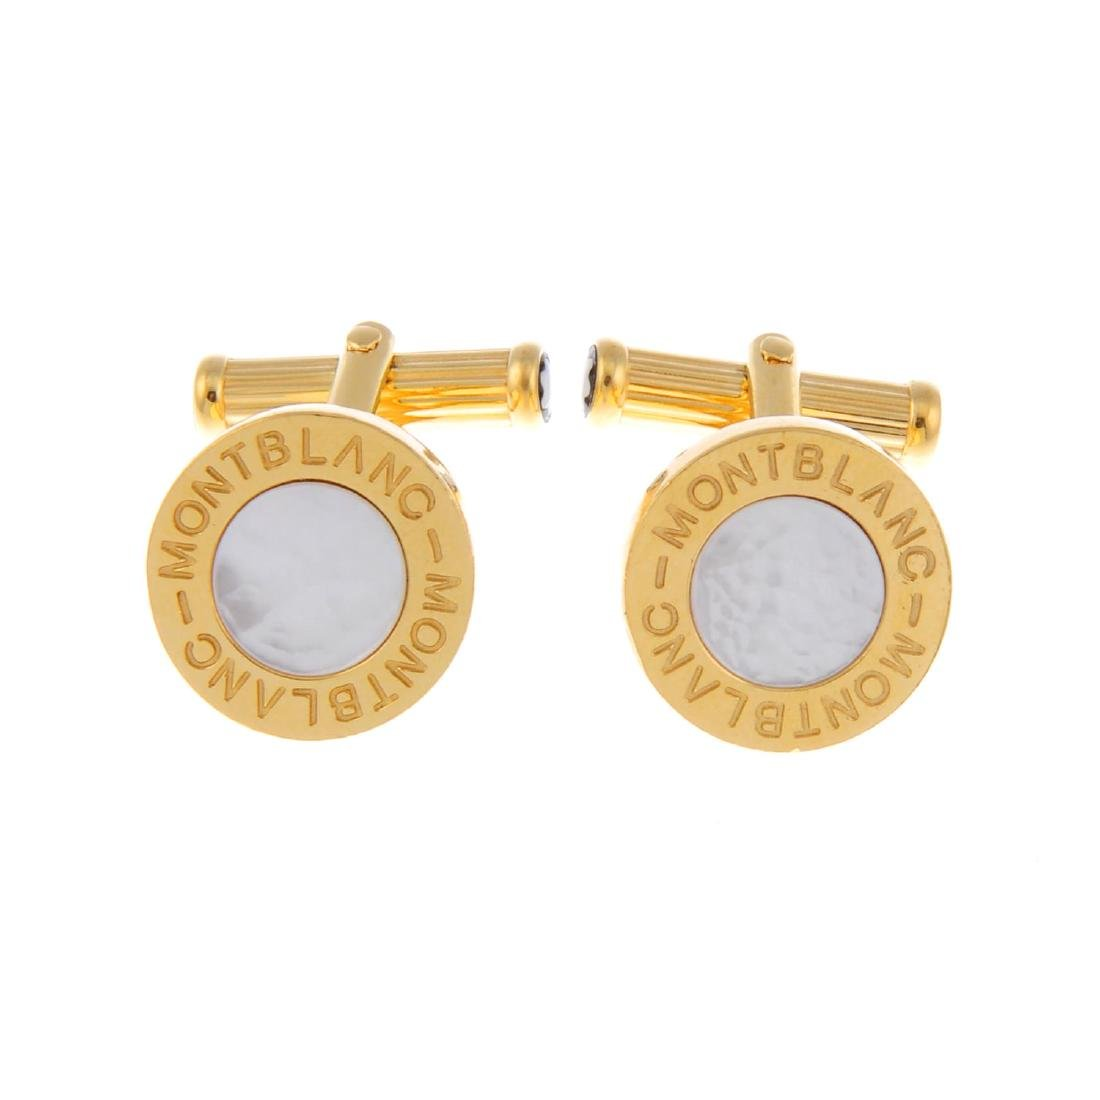 MONT BLANC - a pair of mother-of-pearl cufflinks. Each